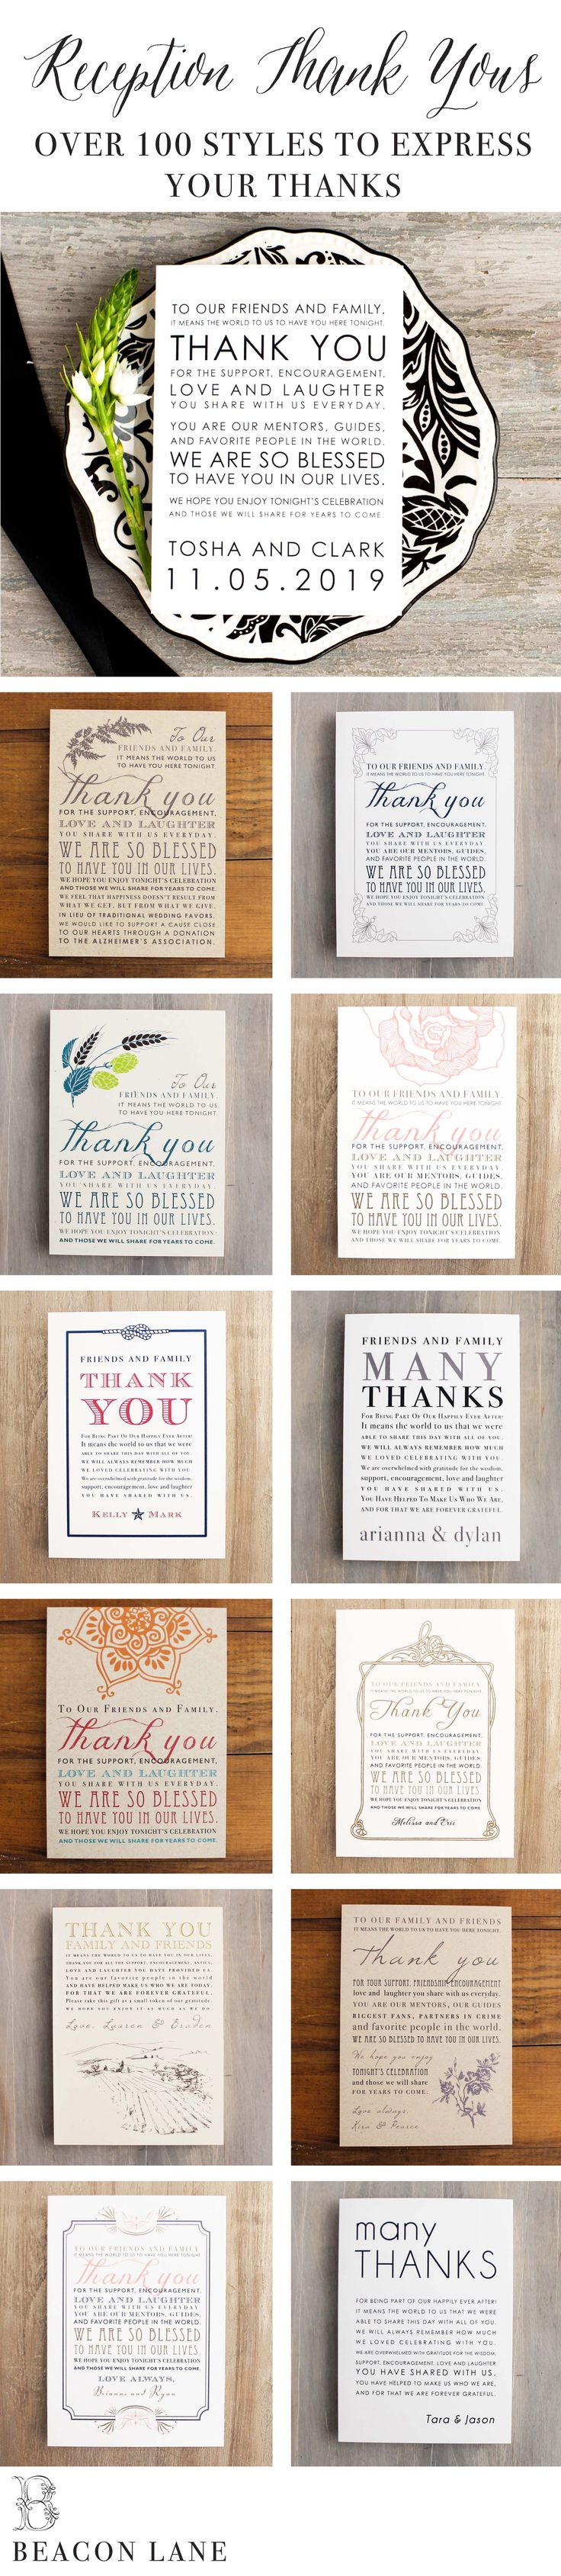 how to write thank you notes for wedding gift cards%0A Our Top Favorite Table Top Wedding Reception Thank You Signs  With over      designs to